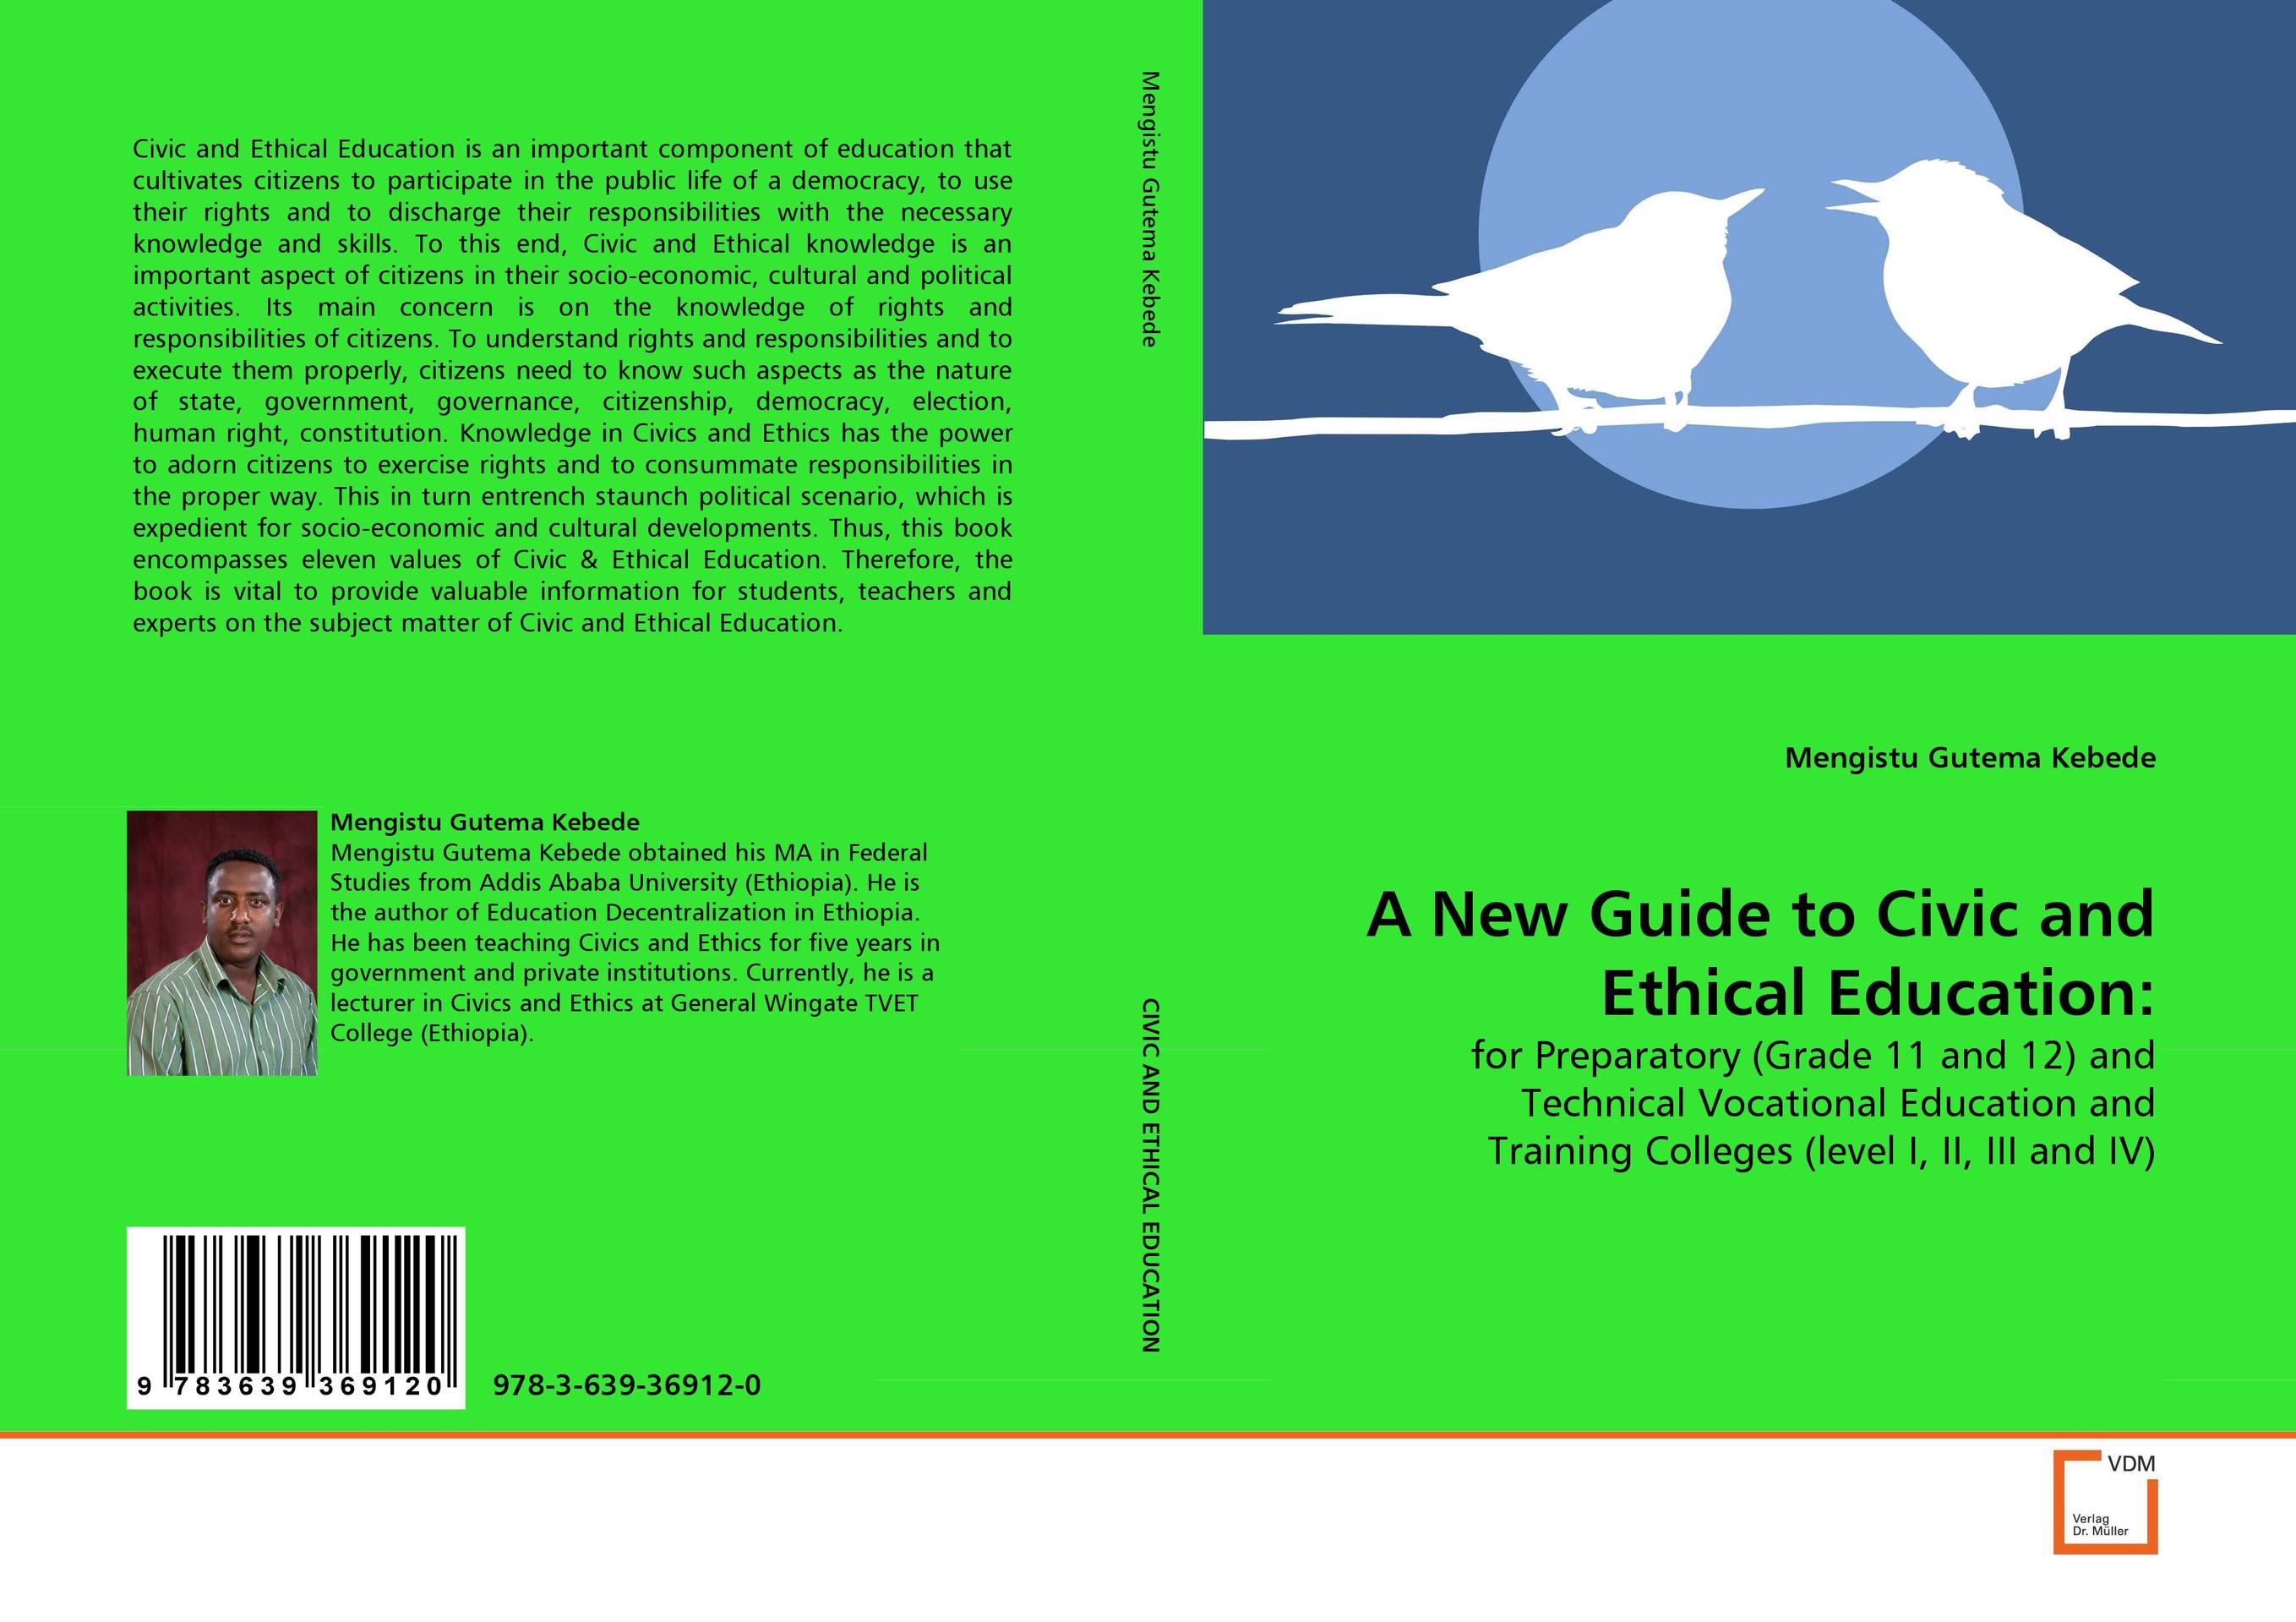 A New Guide to Civic and Ethical Education: sandra ammitzboll and charlotta hall rights with responsibilities